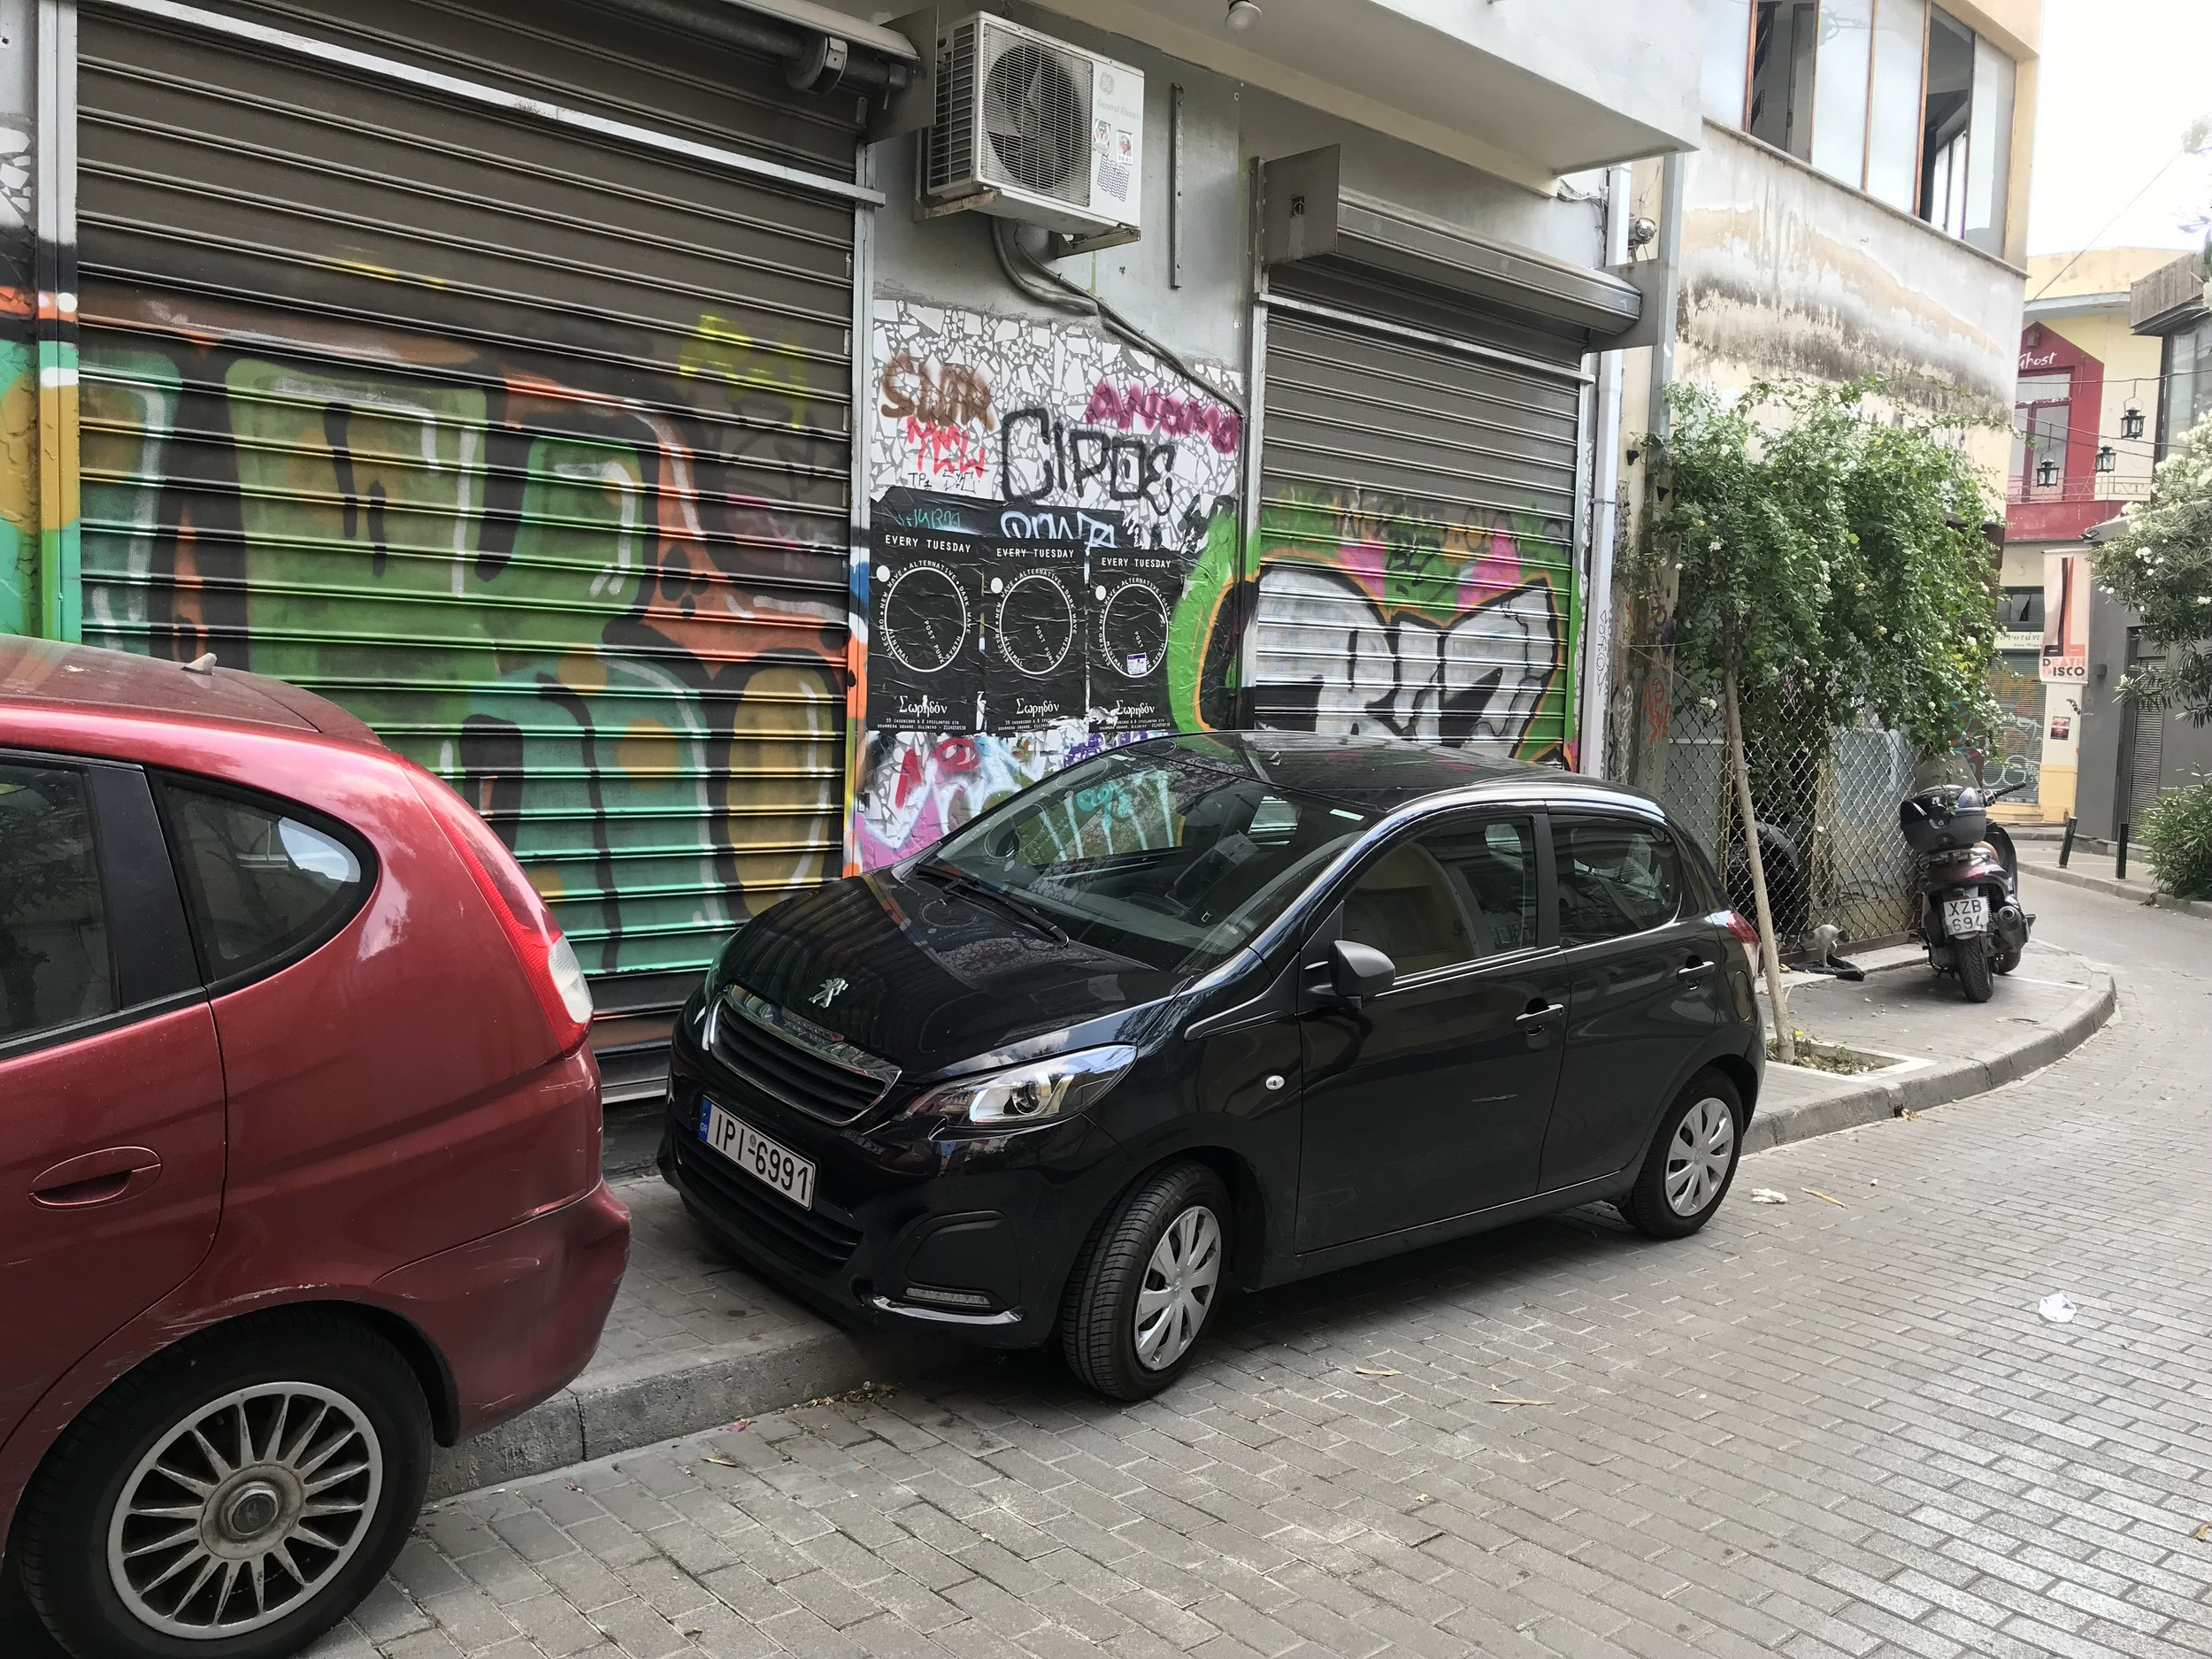 Our car parked in a tight spot, Athens.